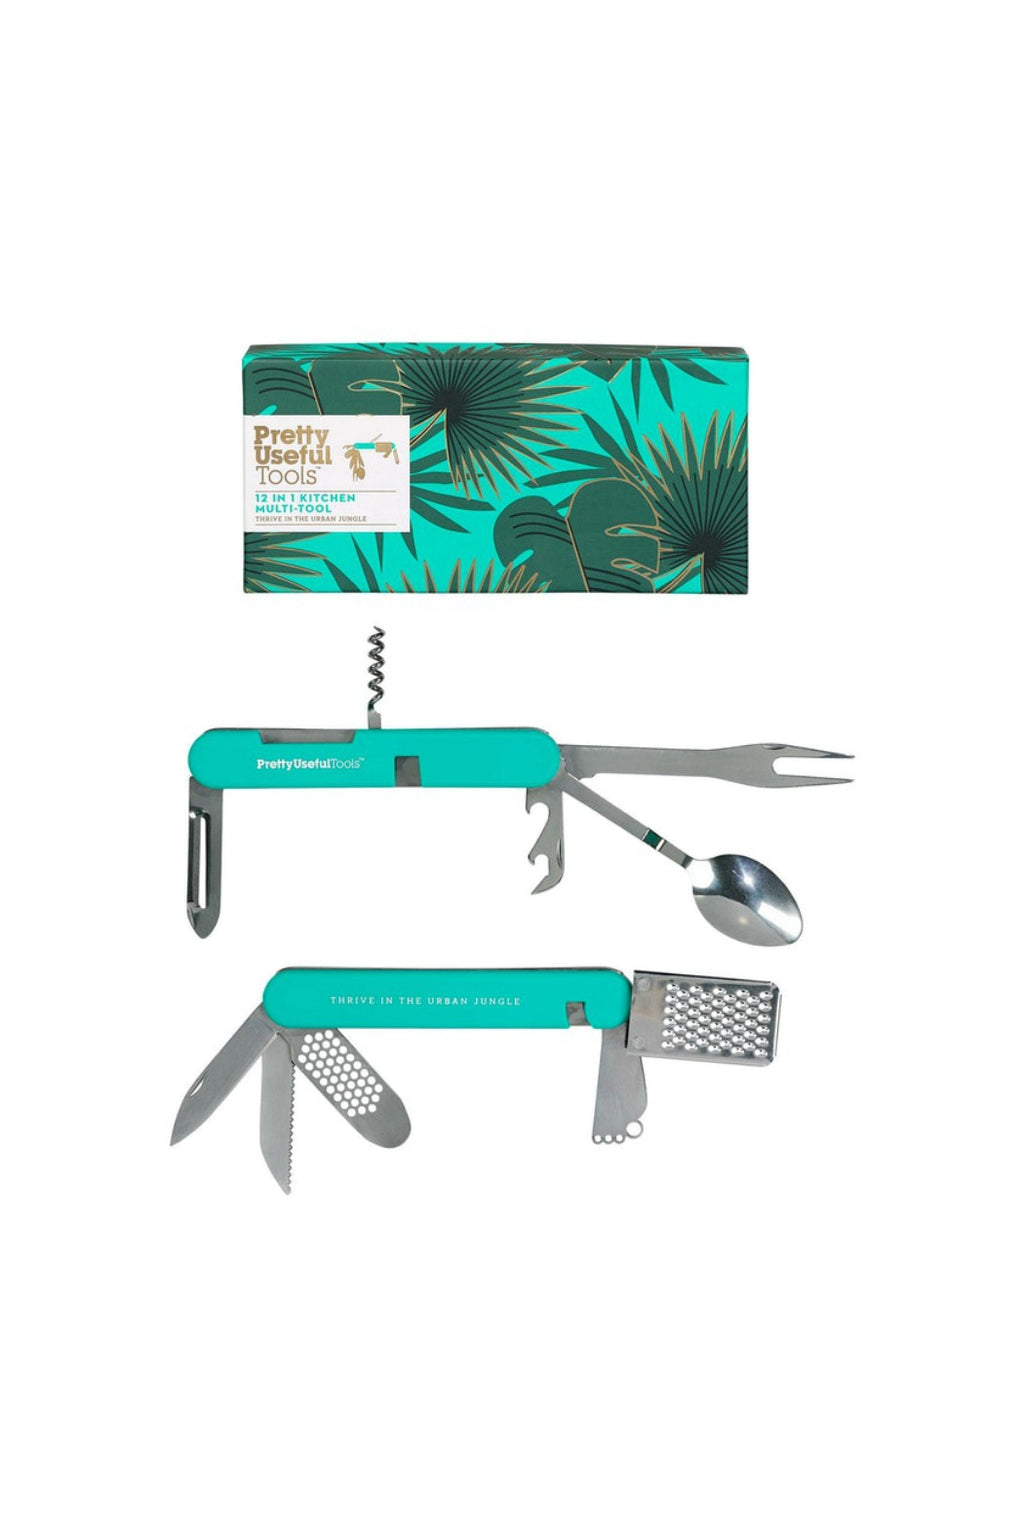 Pretty Useful Tools Kitchen Multi-Tool